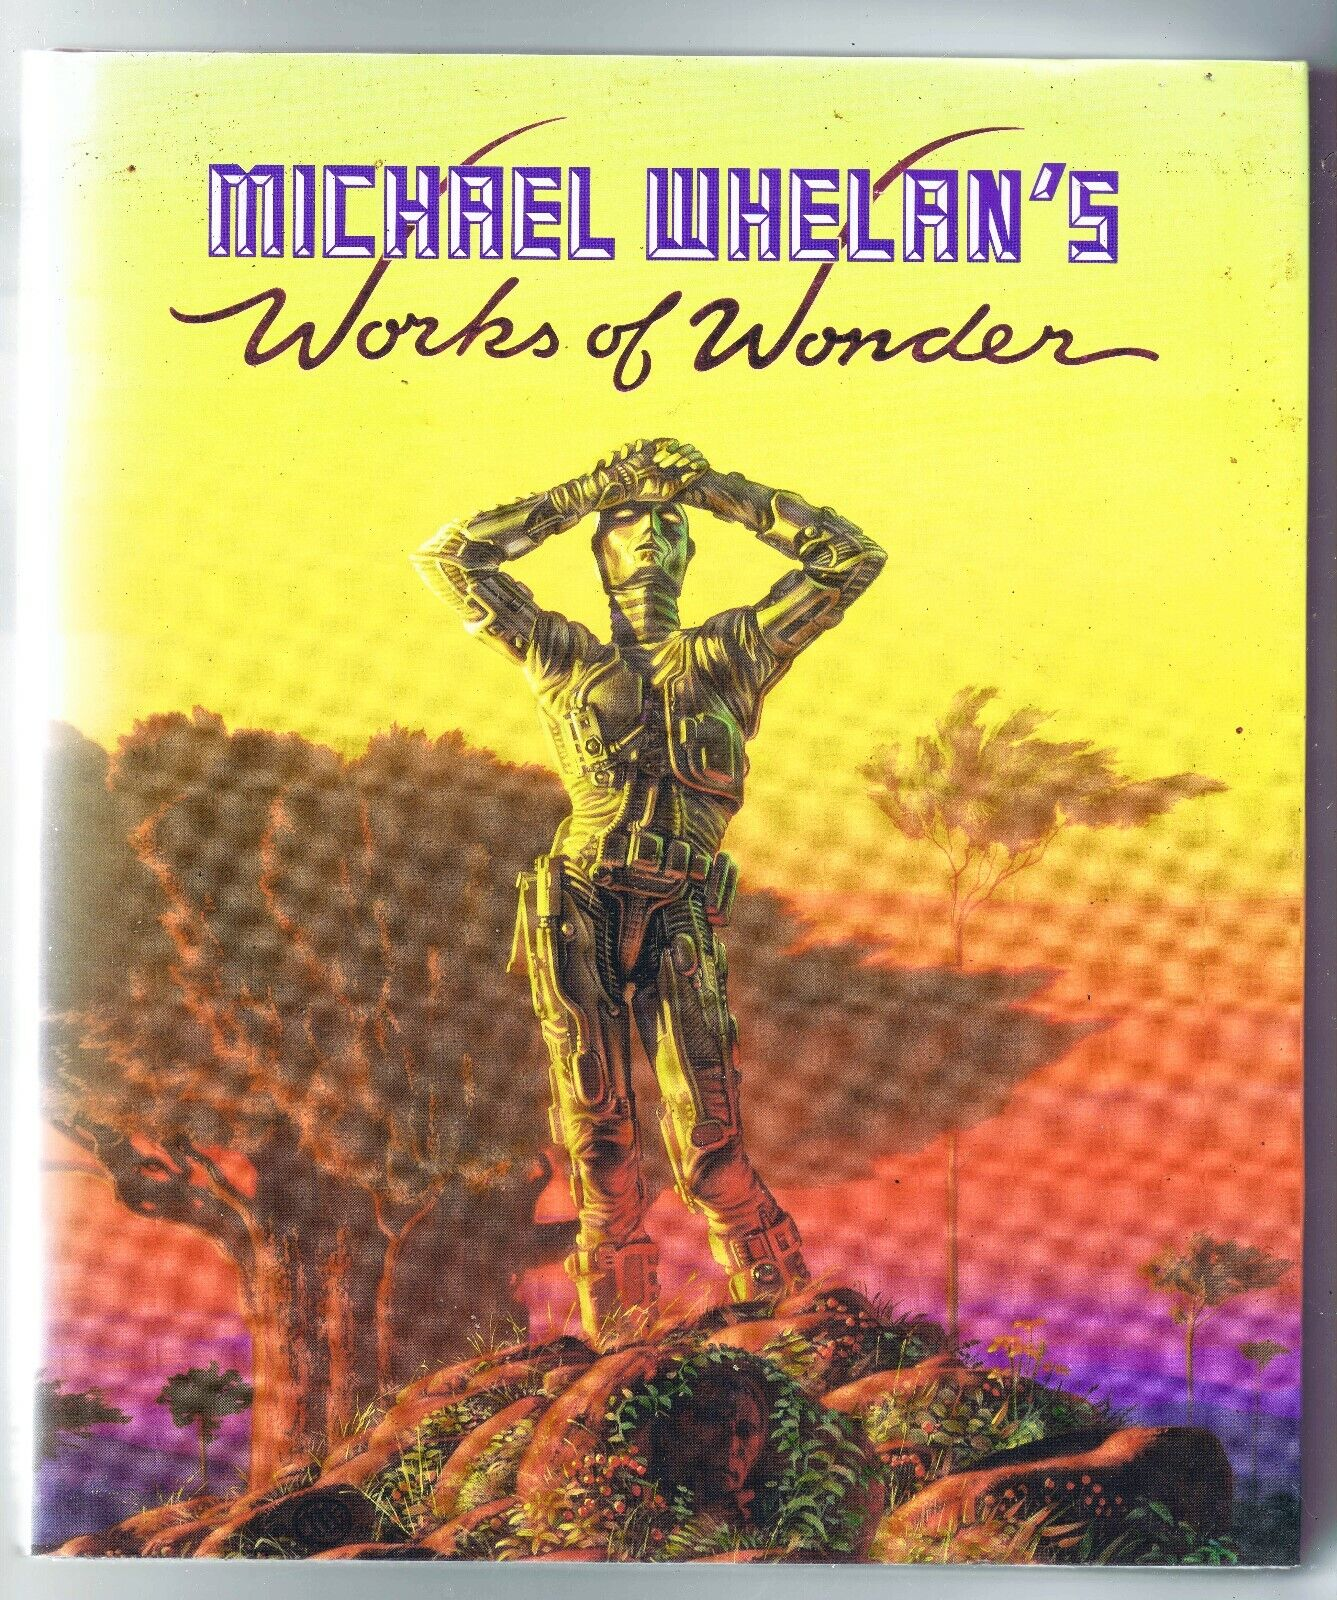 Michael Whelan's Works of Wonder by Michael Whelan (1987, Hardcover)